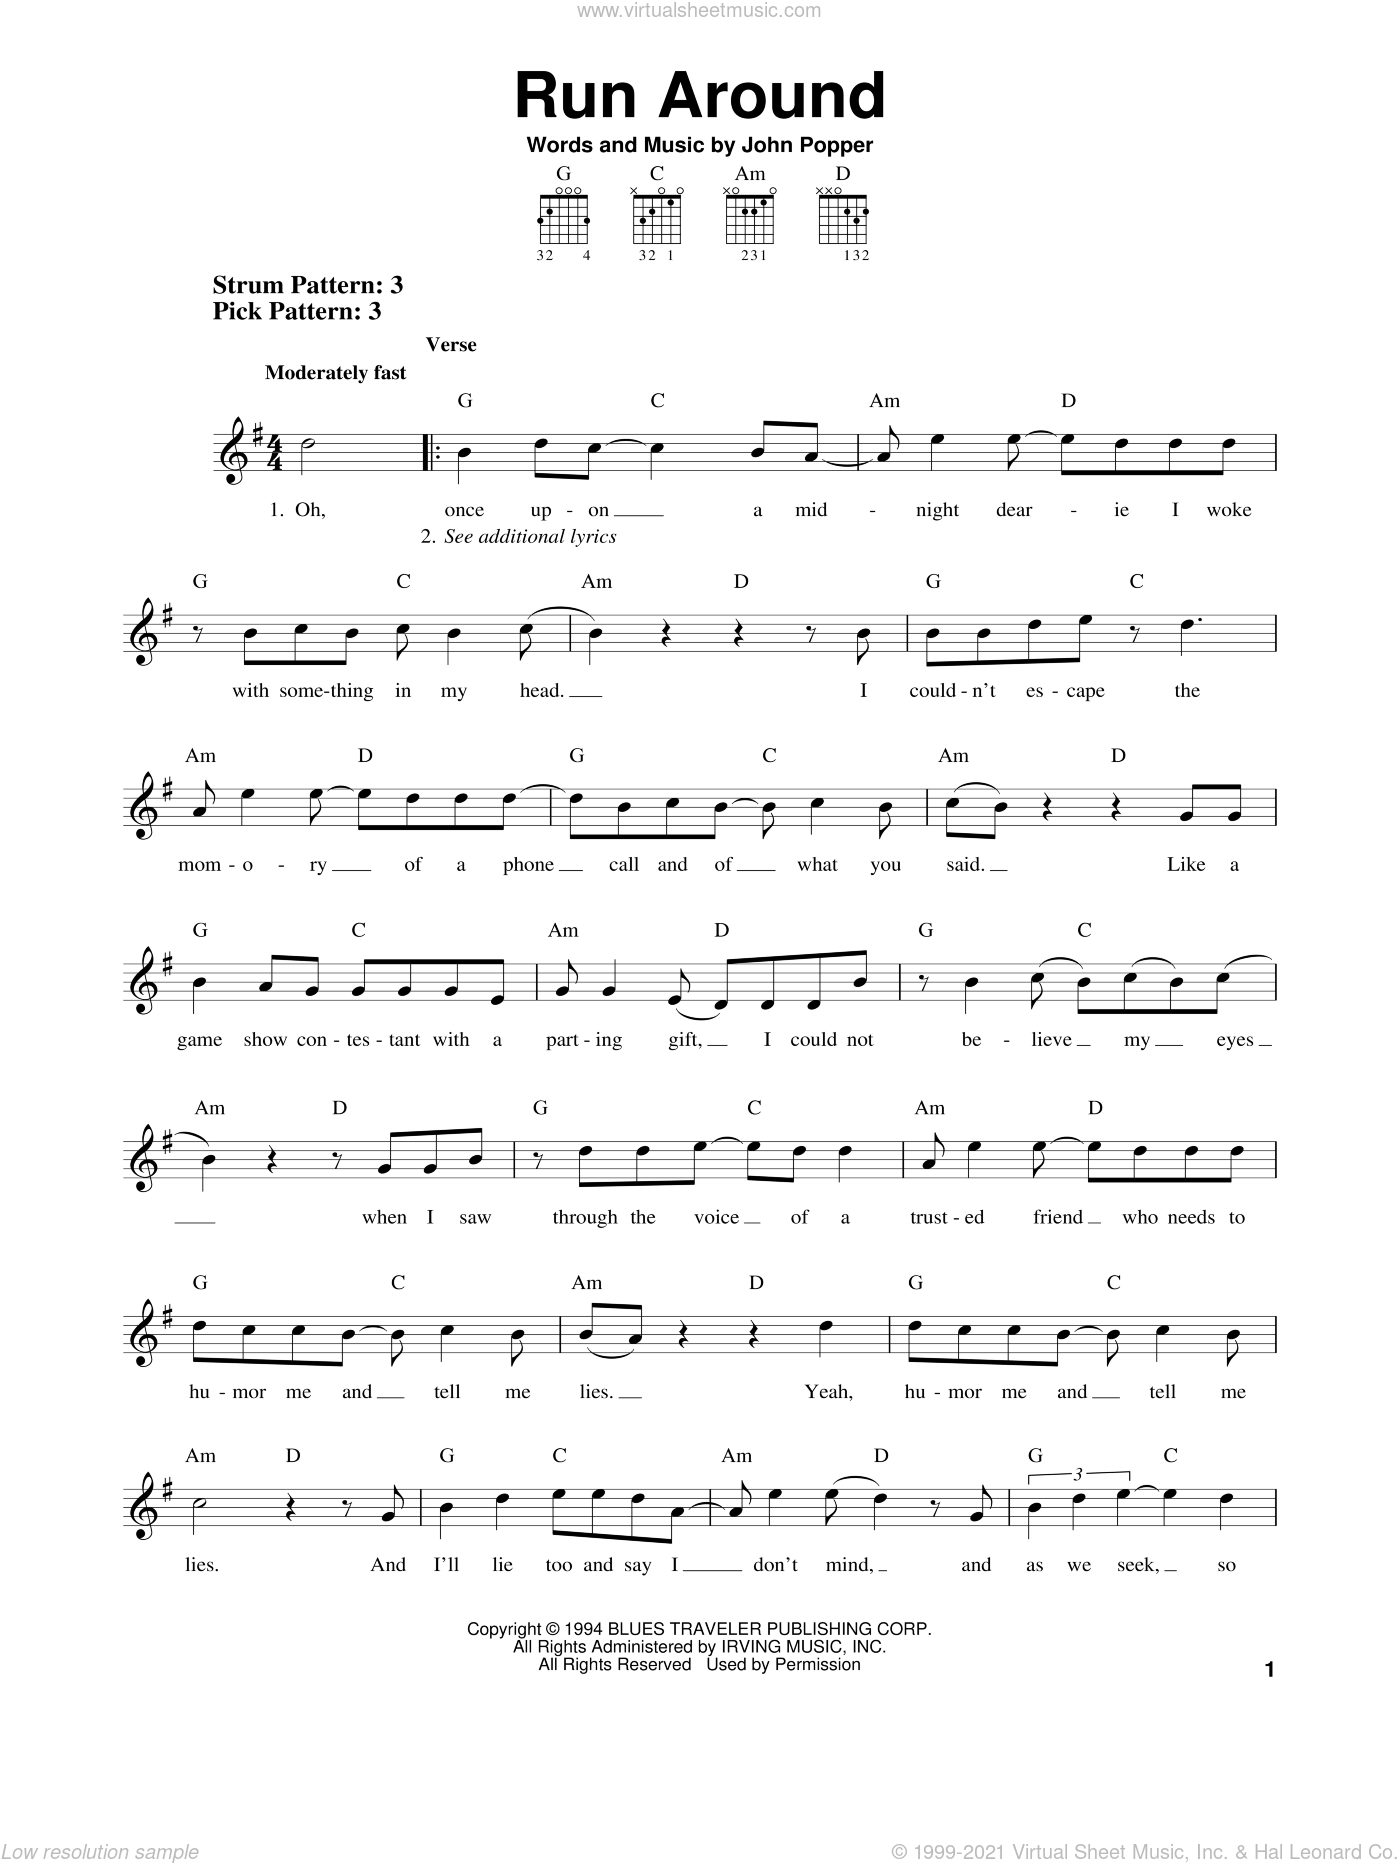 Run Around sheet music for guitar solo (chords) by John Popper